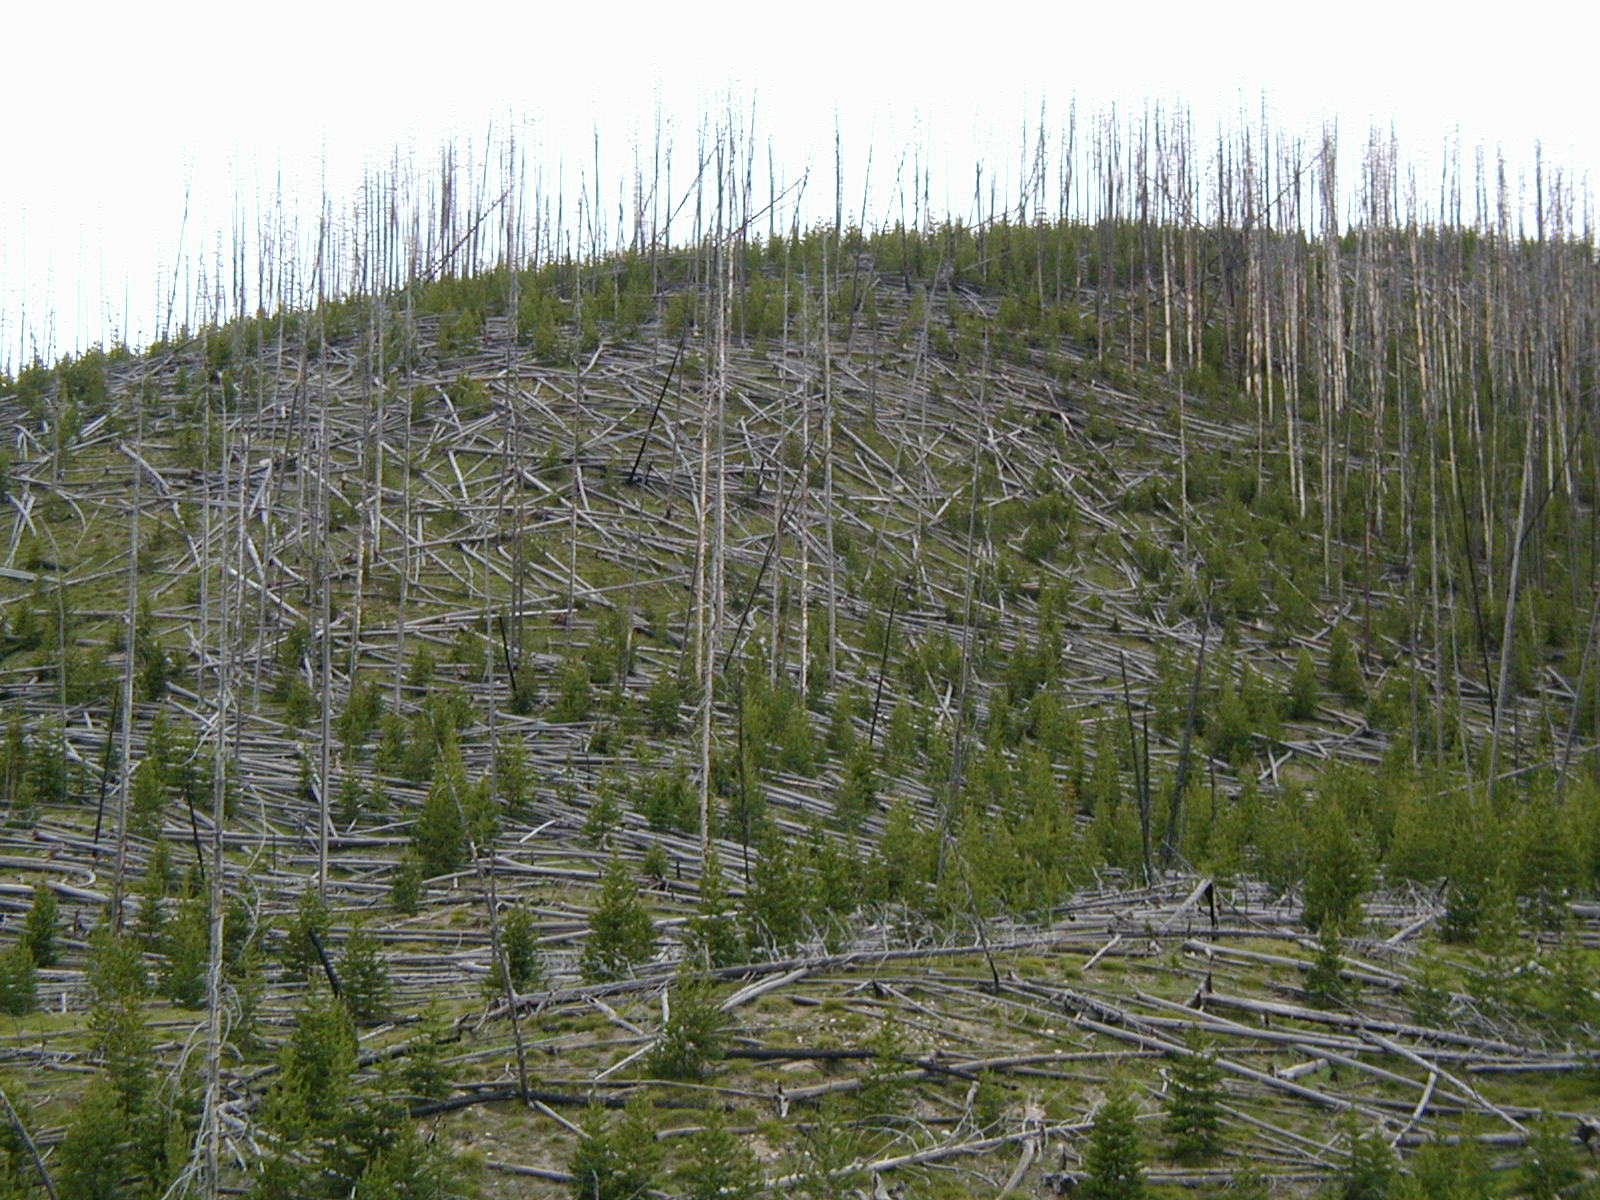 Effects of 1988 Fire - Nature's Pick-Up Stix